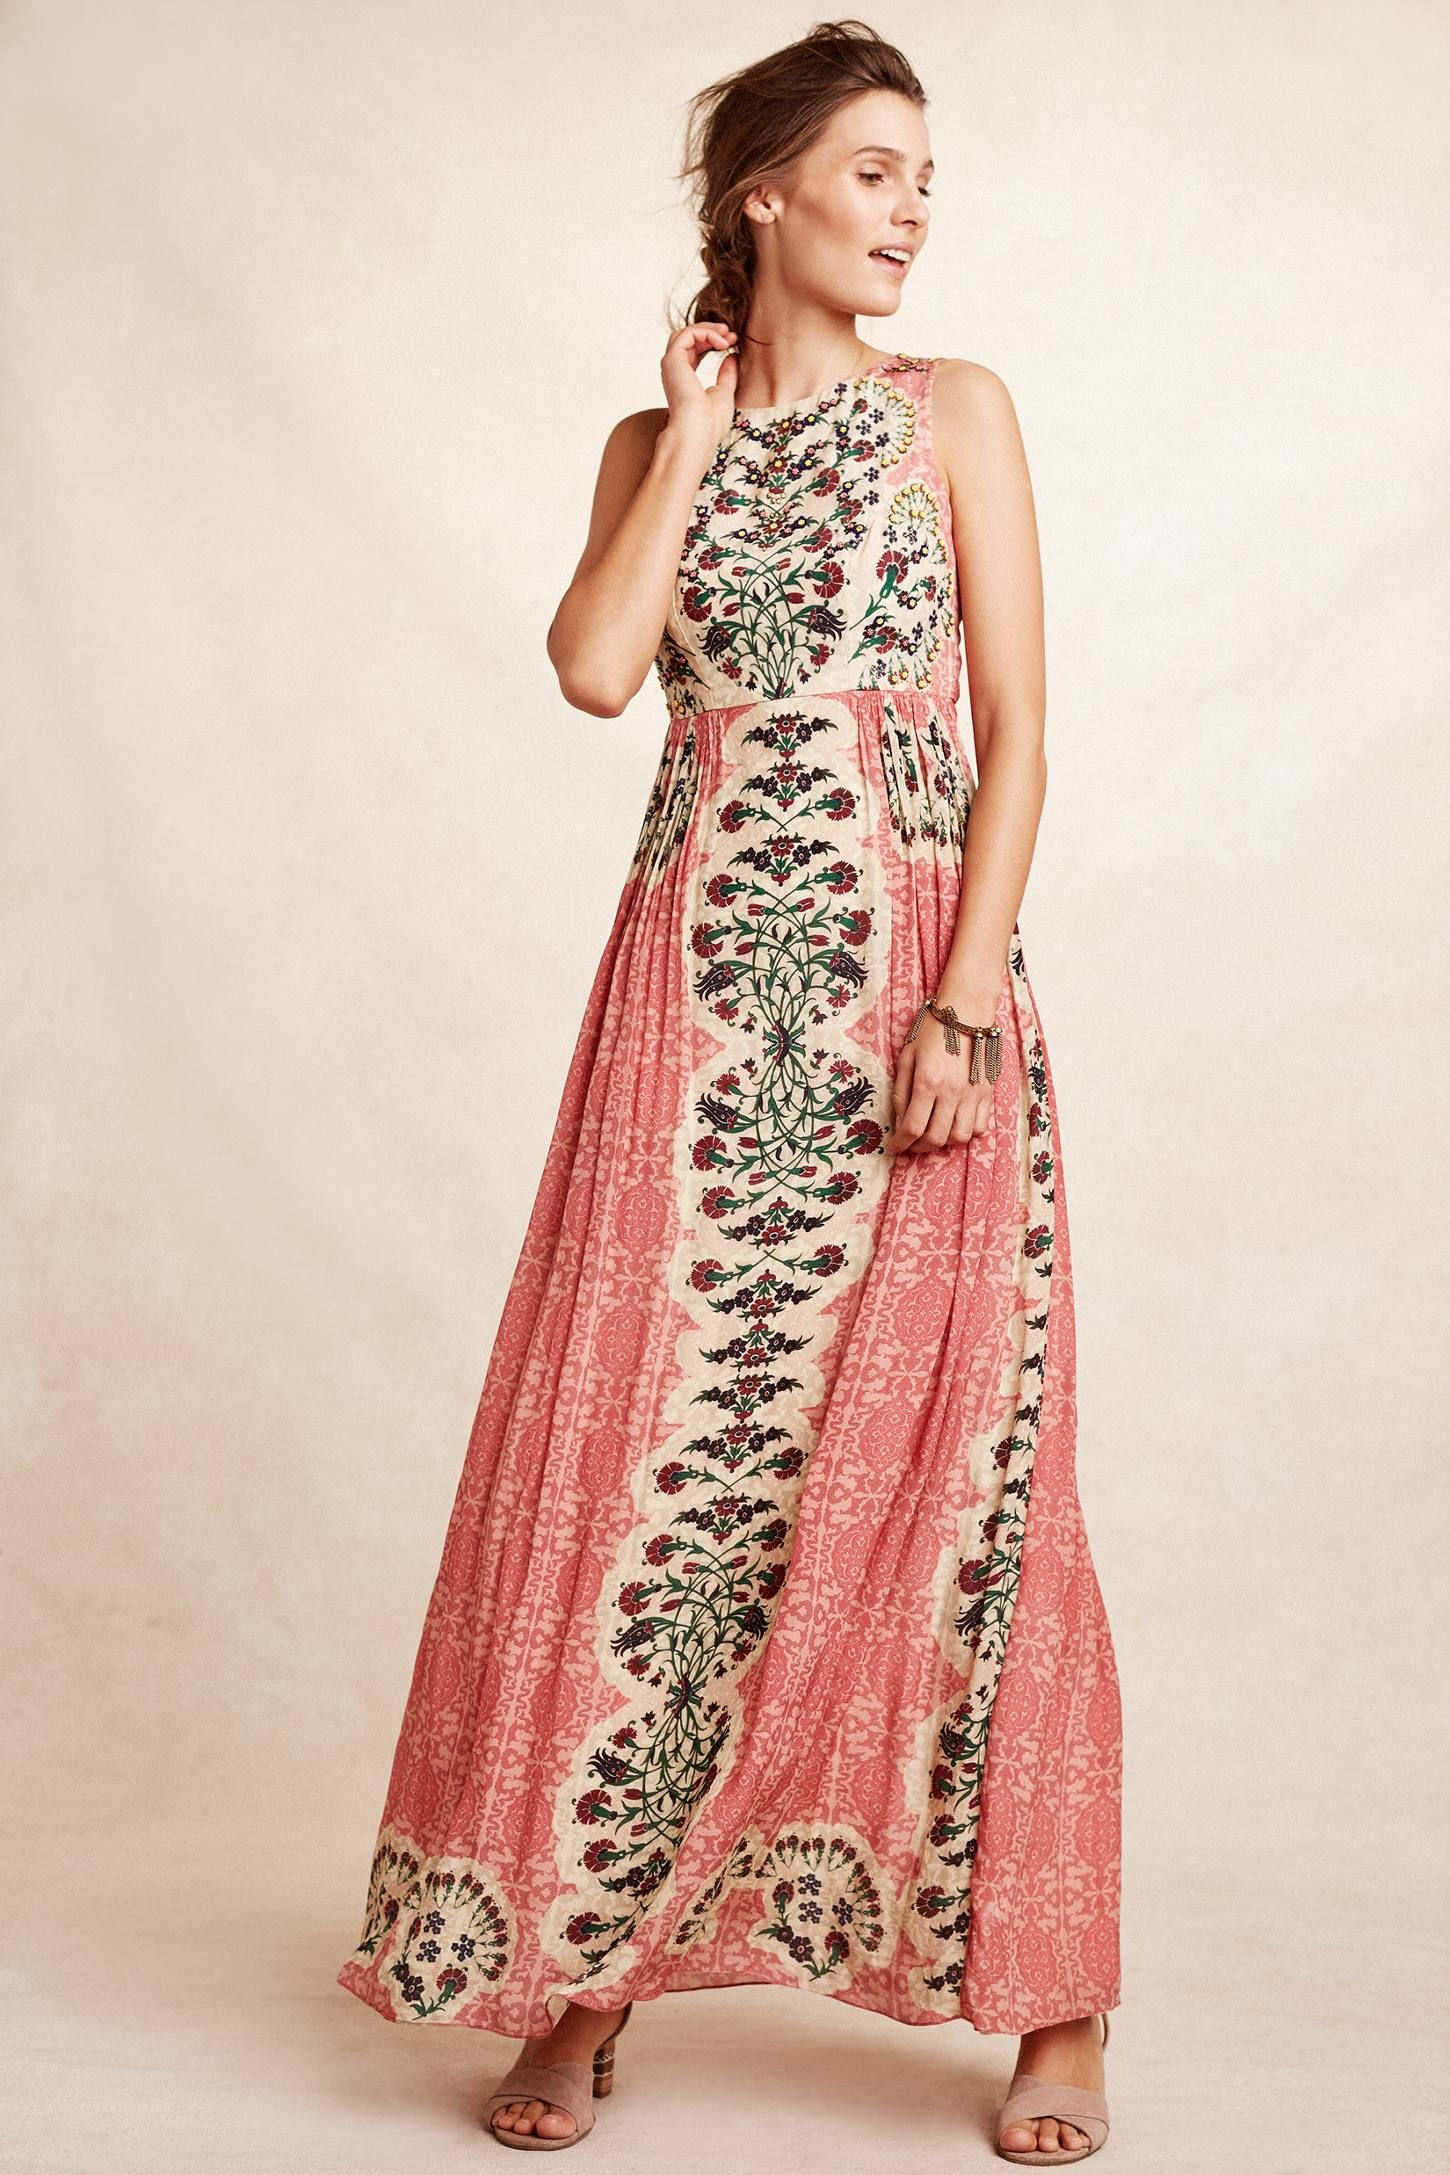 e7bb649c7f4a Shop the Botanique Maxi Dress and more Anthropologie at Anthropologie today.  Read customer reviews, discover product details and more.